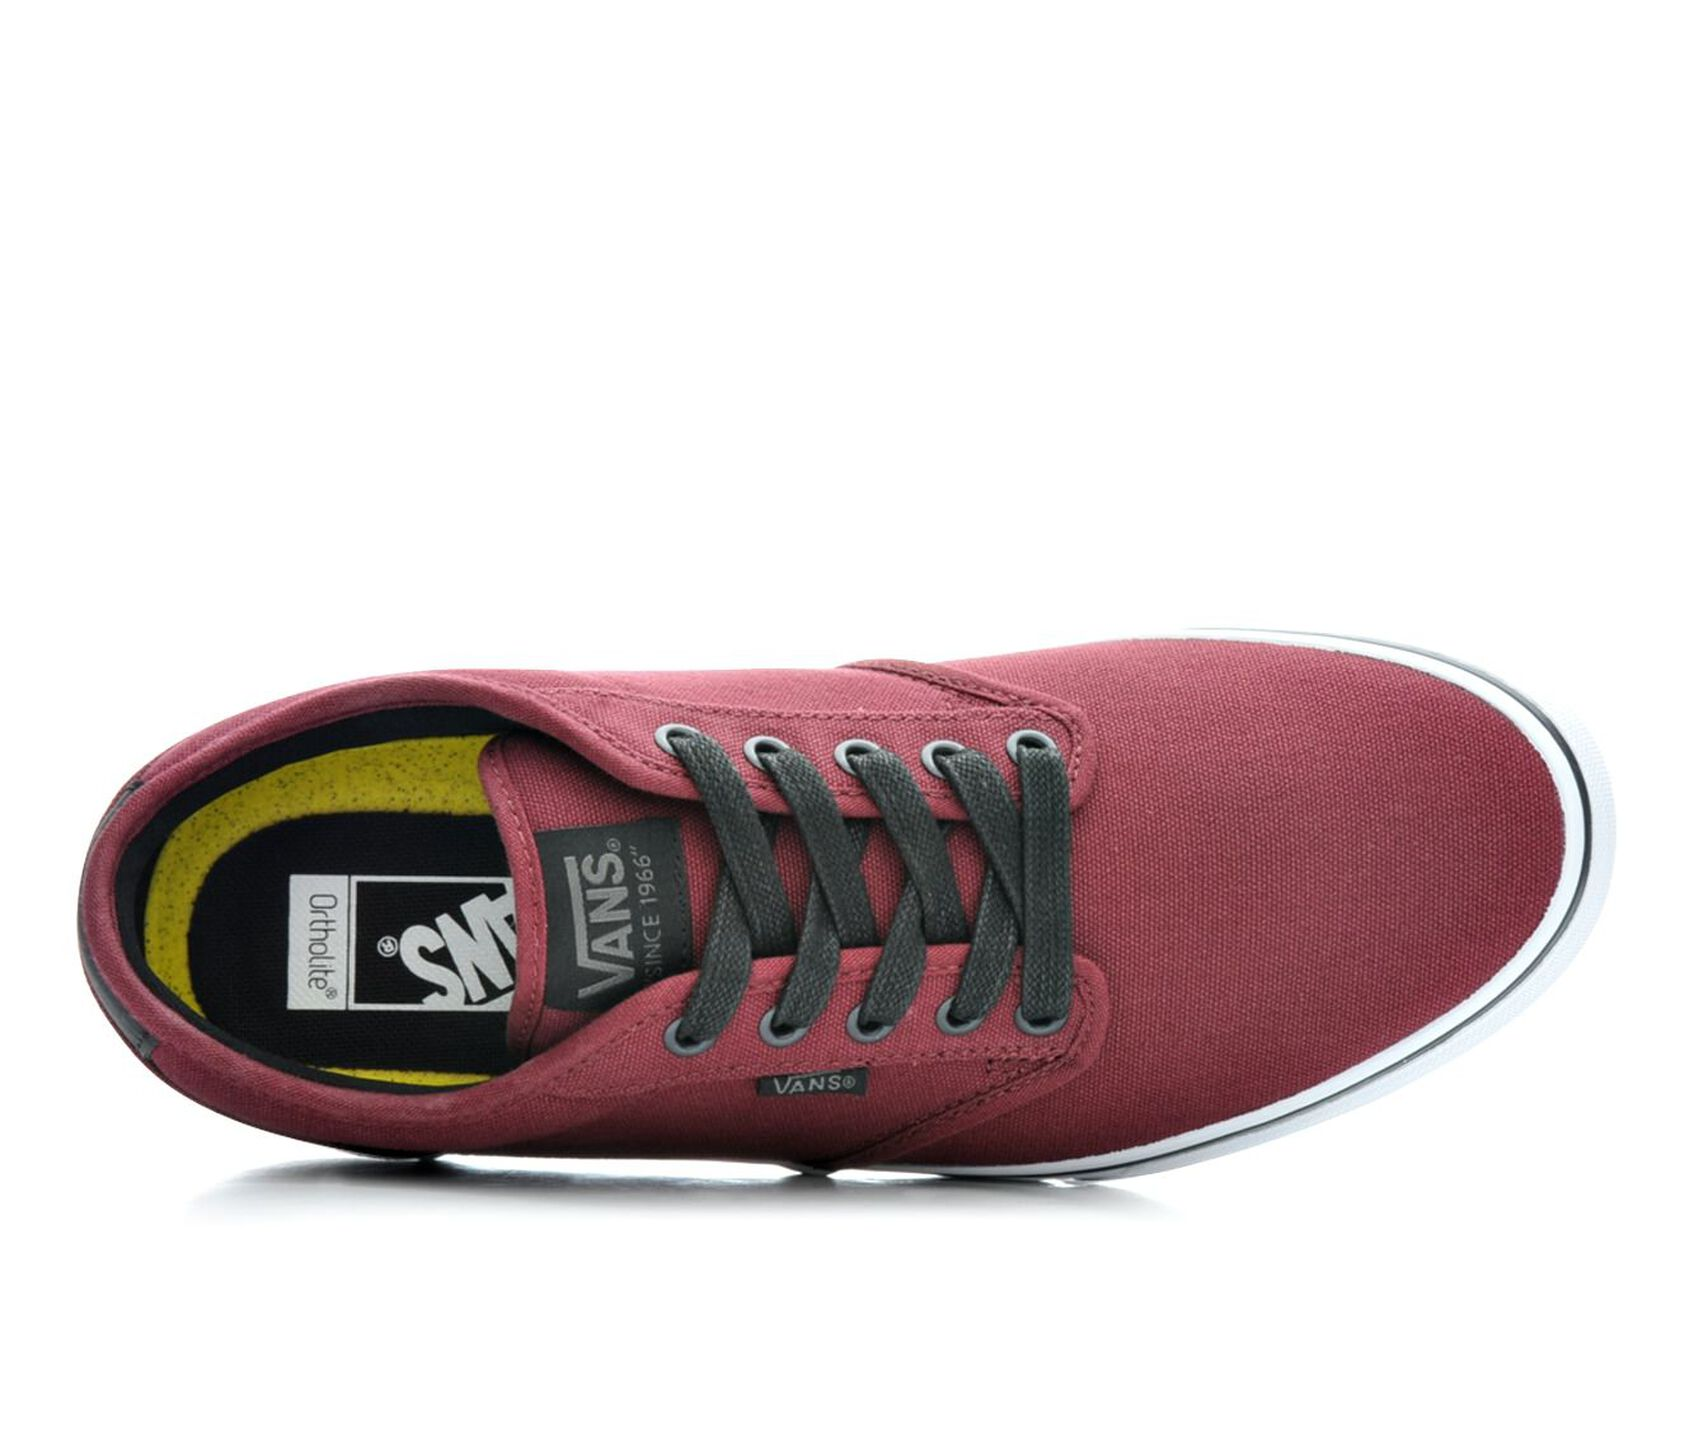 43657b3aee235e Skate Deluxe Atwood Men s Shoes Vans qtXww6Uxg in driver ...